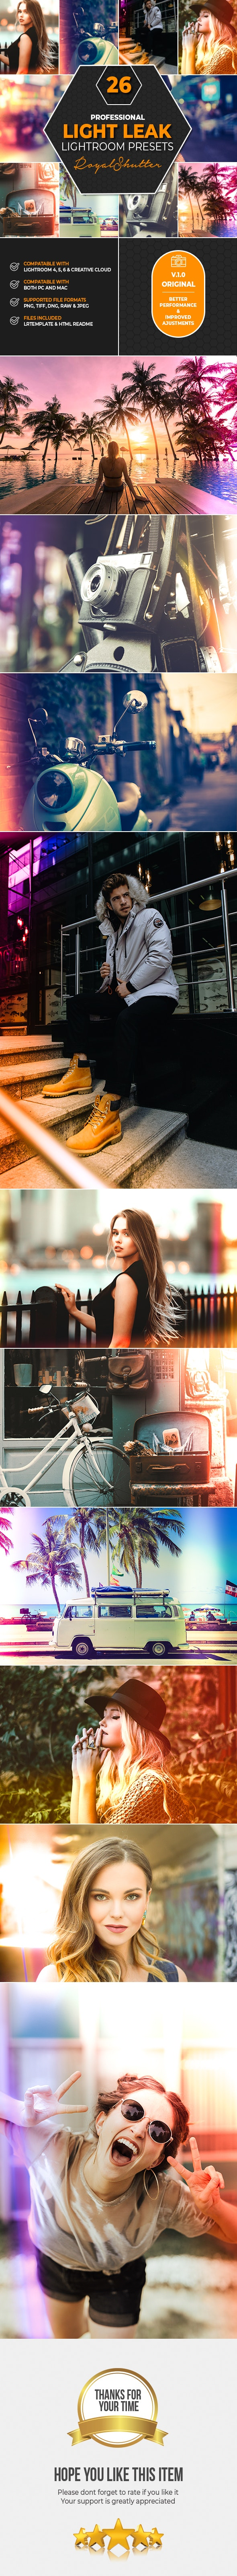 26 Light Leak Lightroom Presets - Lightroom Presets Add-ons